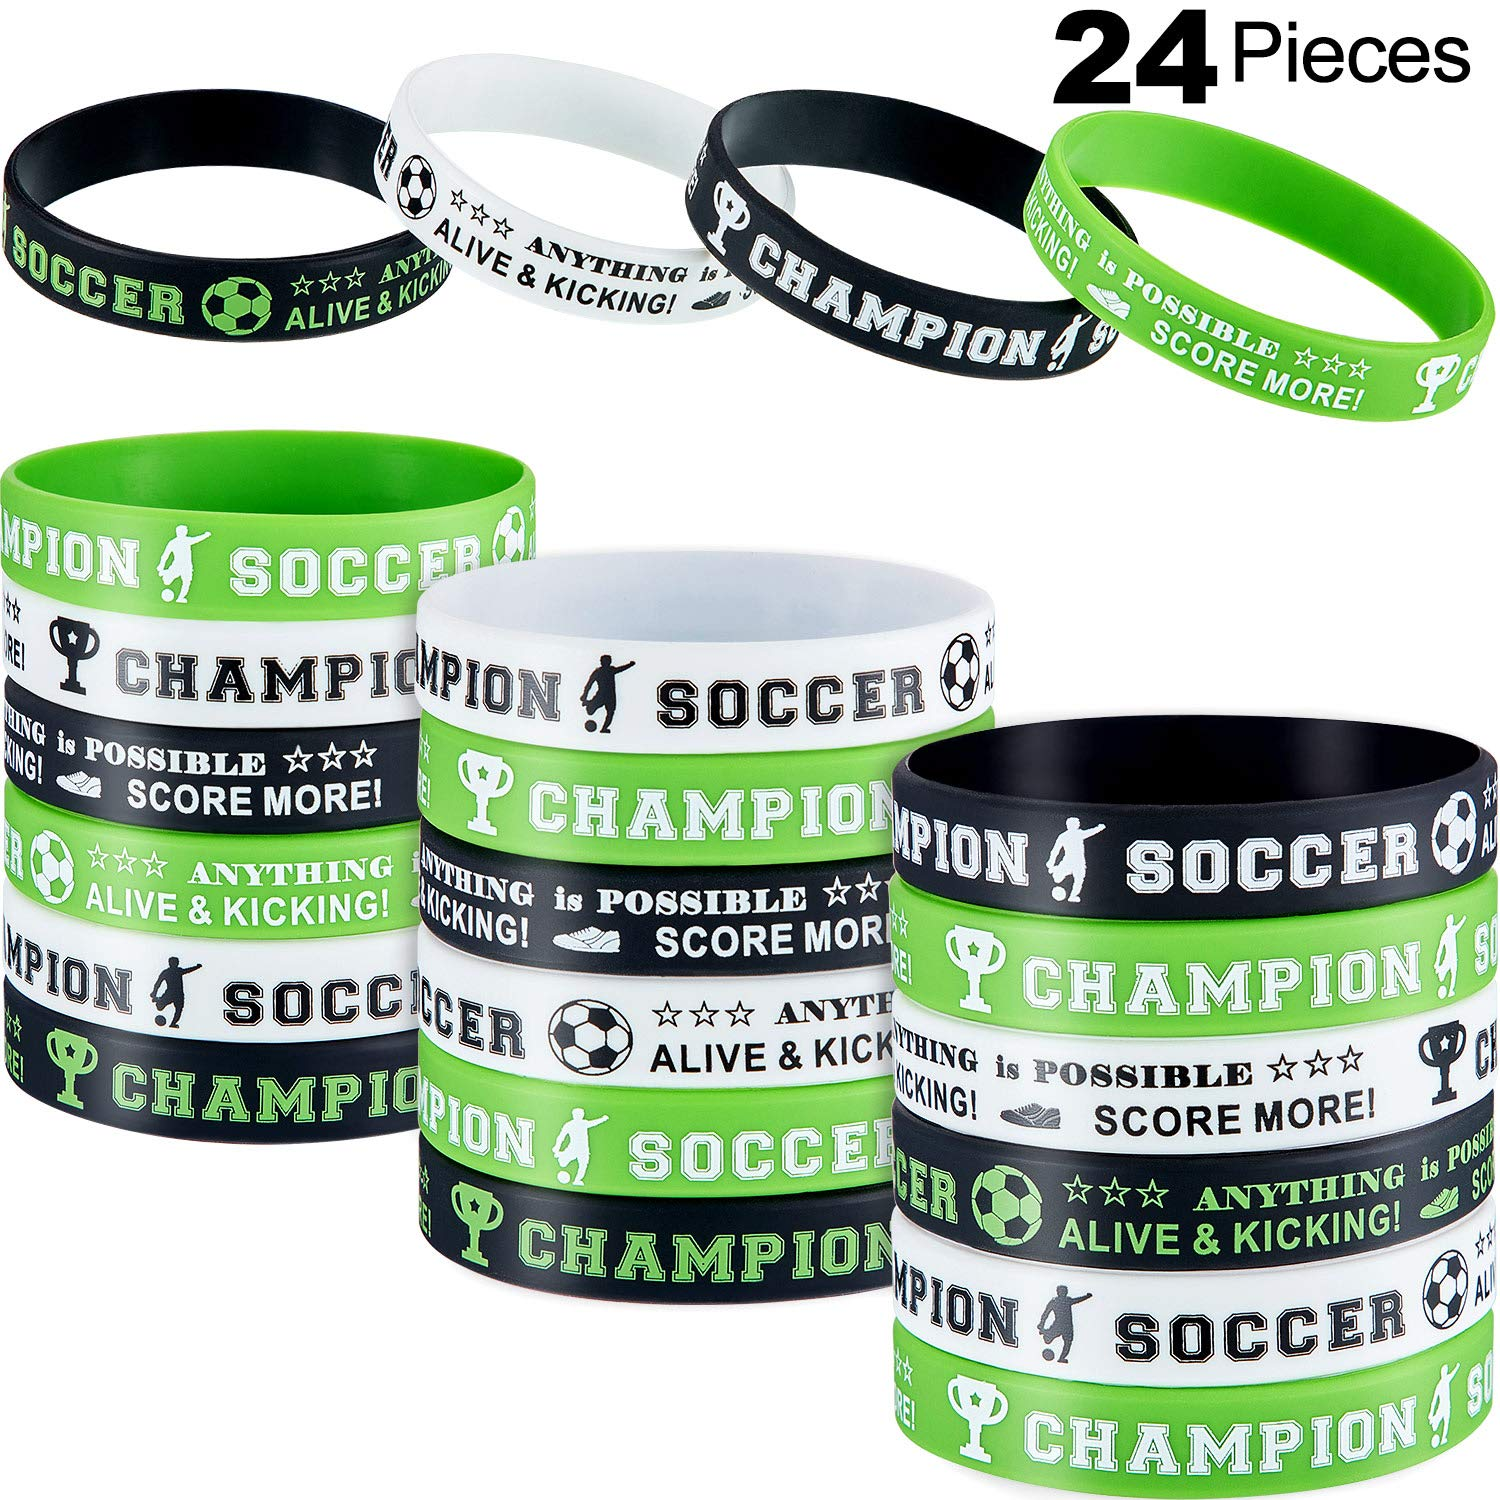 Hicarer Soccer Silicone Wristbands Soccer Theme Rubber Wristbands Soccer Bracelet Wristbands for Soccer Themed Birthday School Gifts Party Favors (24 Pieces) by Hicarer